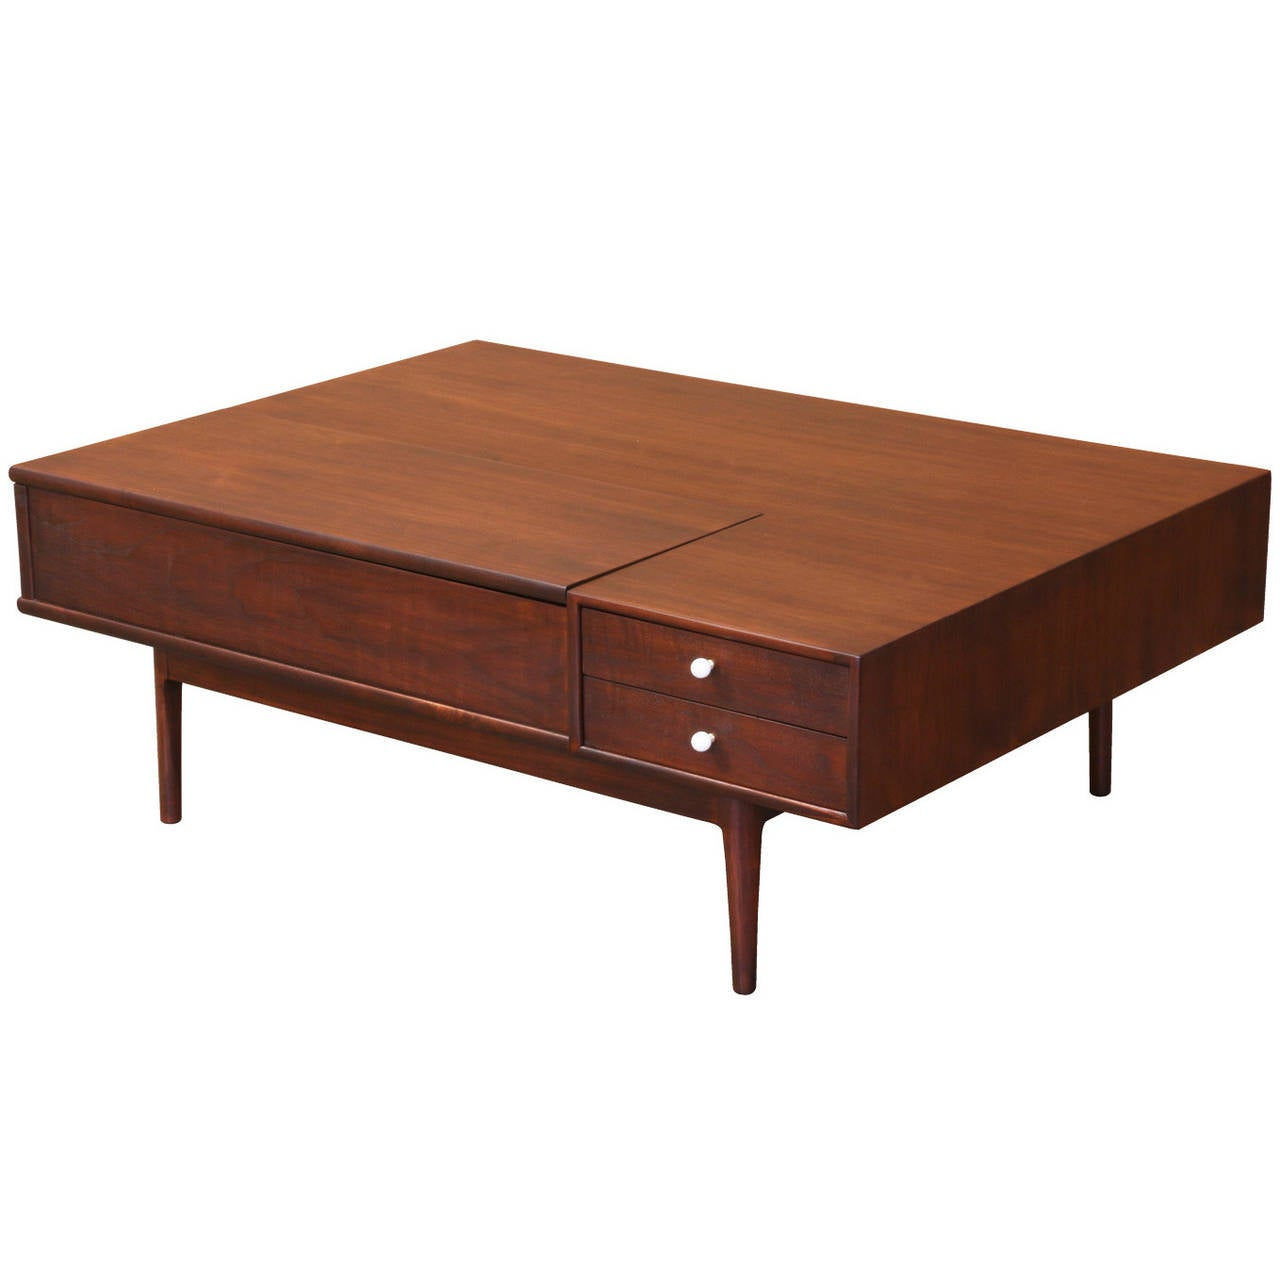 Stewart Macdougall And Kipp Stewart Declaration Coffee Table For Drexel For Sale At 1stdibs